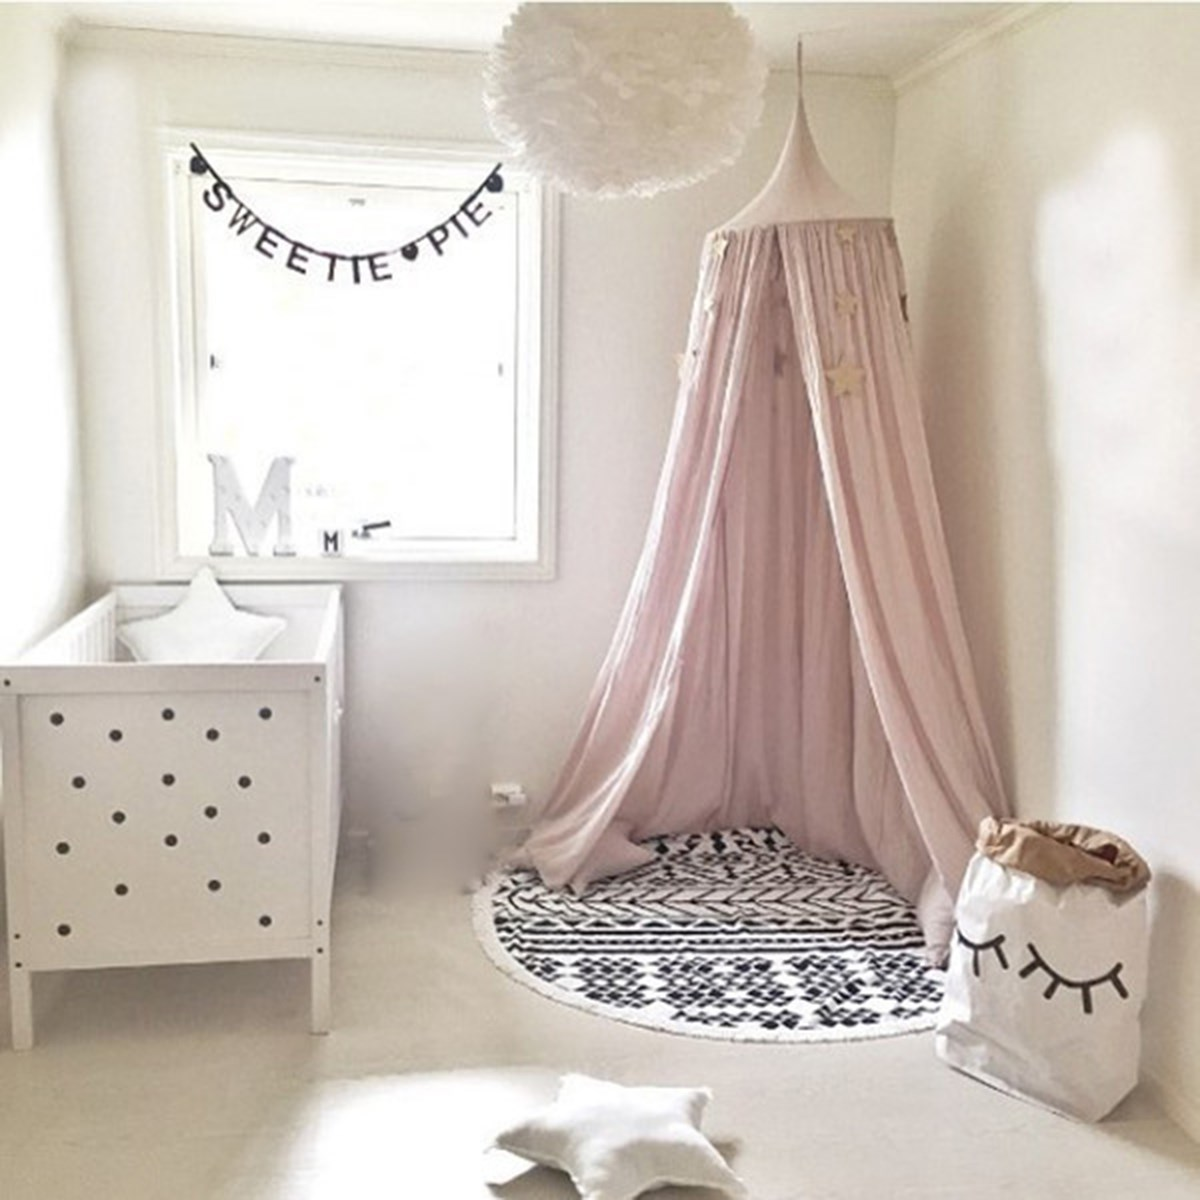 Mosquito Net Curtain Kids Baby Bedding Dome Bed Canopy Netting Bedcover for Baby Kids Reading Playing Home-in Mosquito Net from Home u0026 Garden on ...  sc 1 st  AliExpress.com & Mosquito Net Curtain Kids Baby Bedding Dome Bed Canopy Netting ...